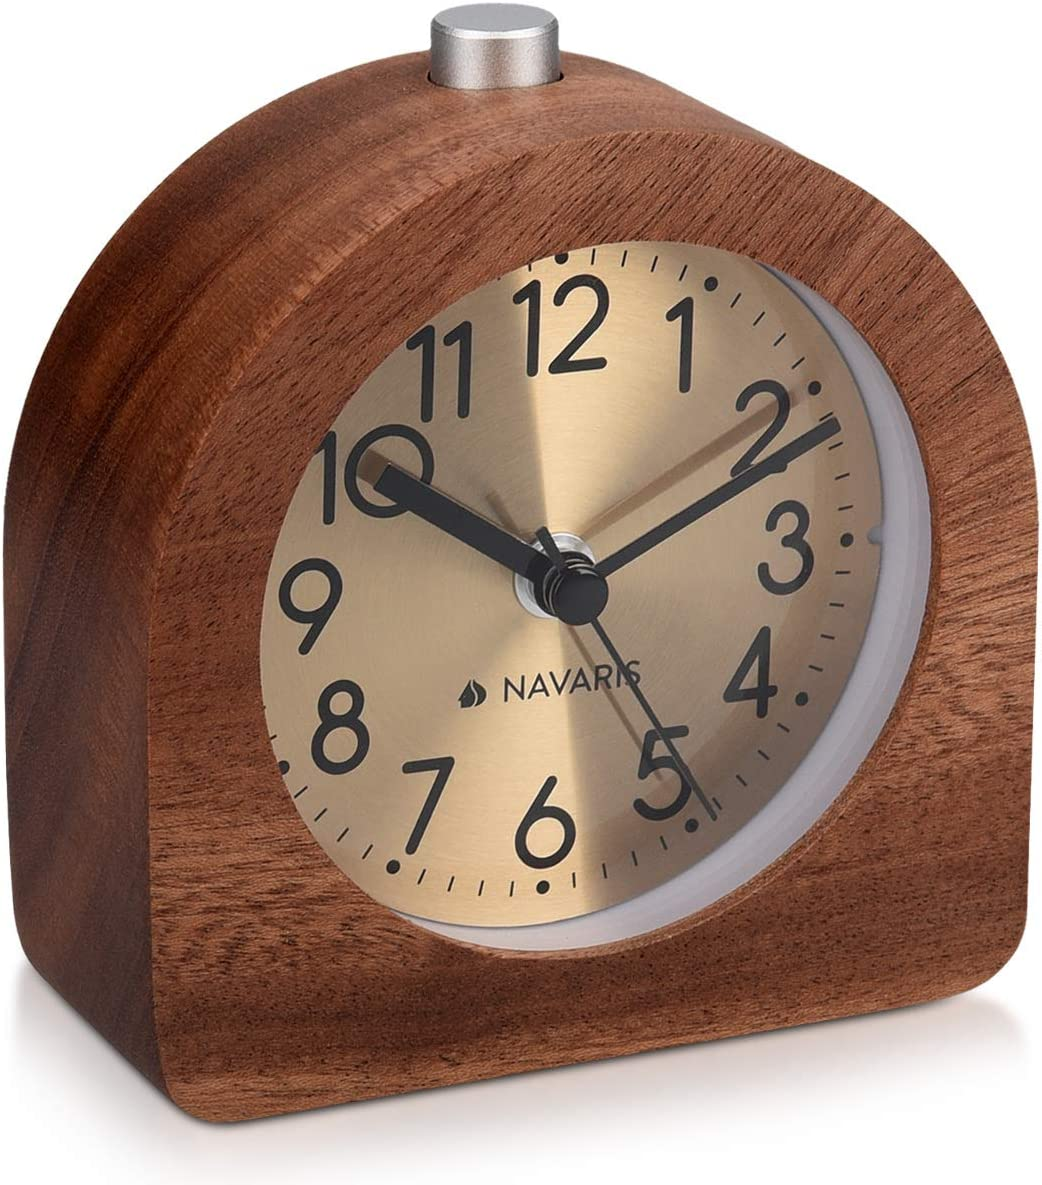 Navaris Wood Analog Alarm Clock – Half-Round Gold Face Battery-Operated Non-Ticking Clock with Snooze Button and Light – Dark Brown